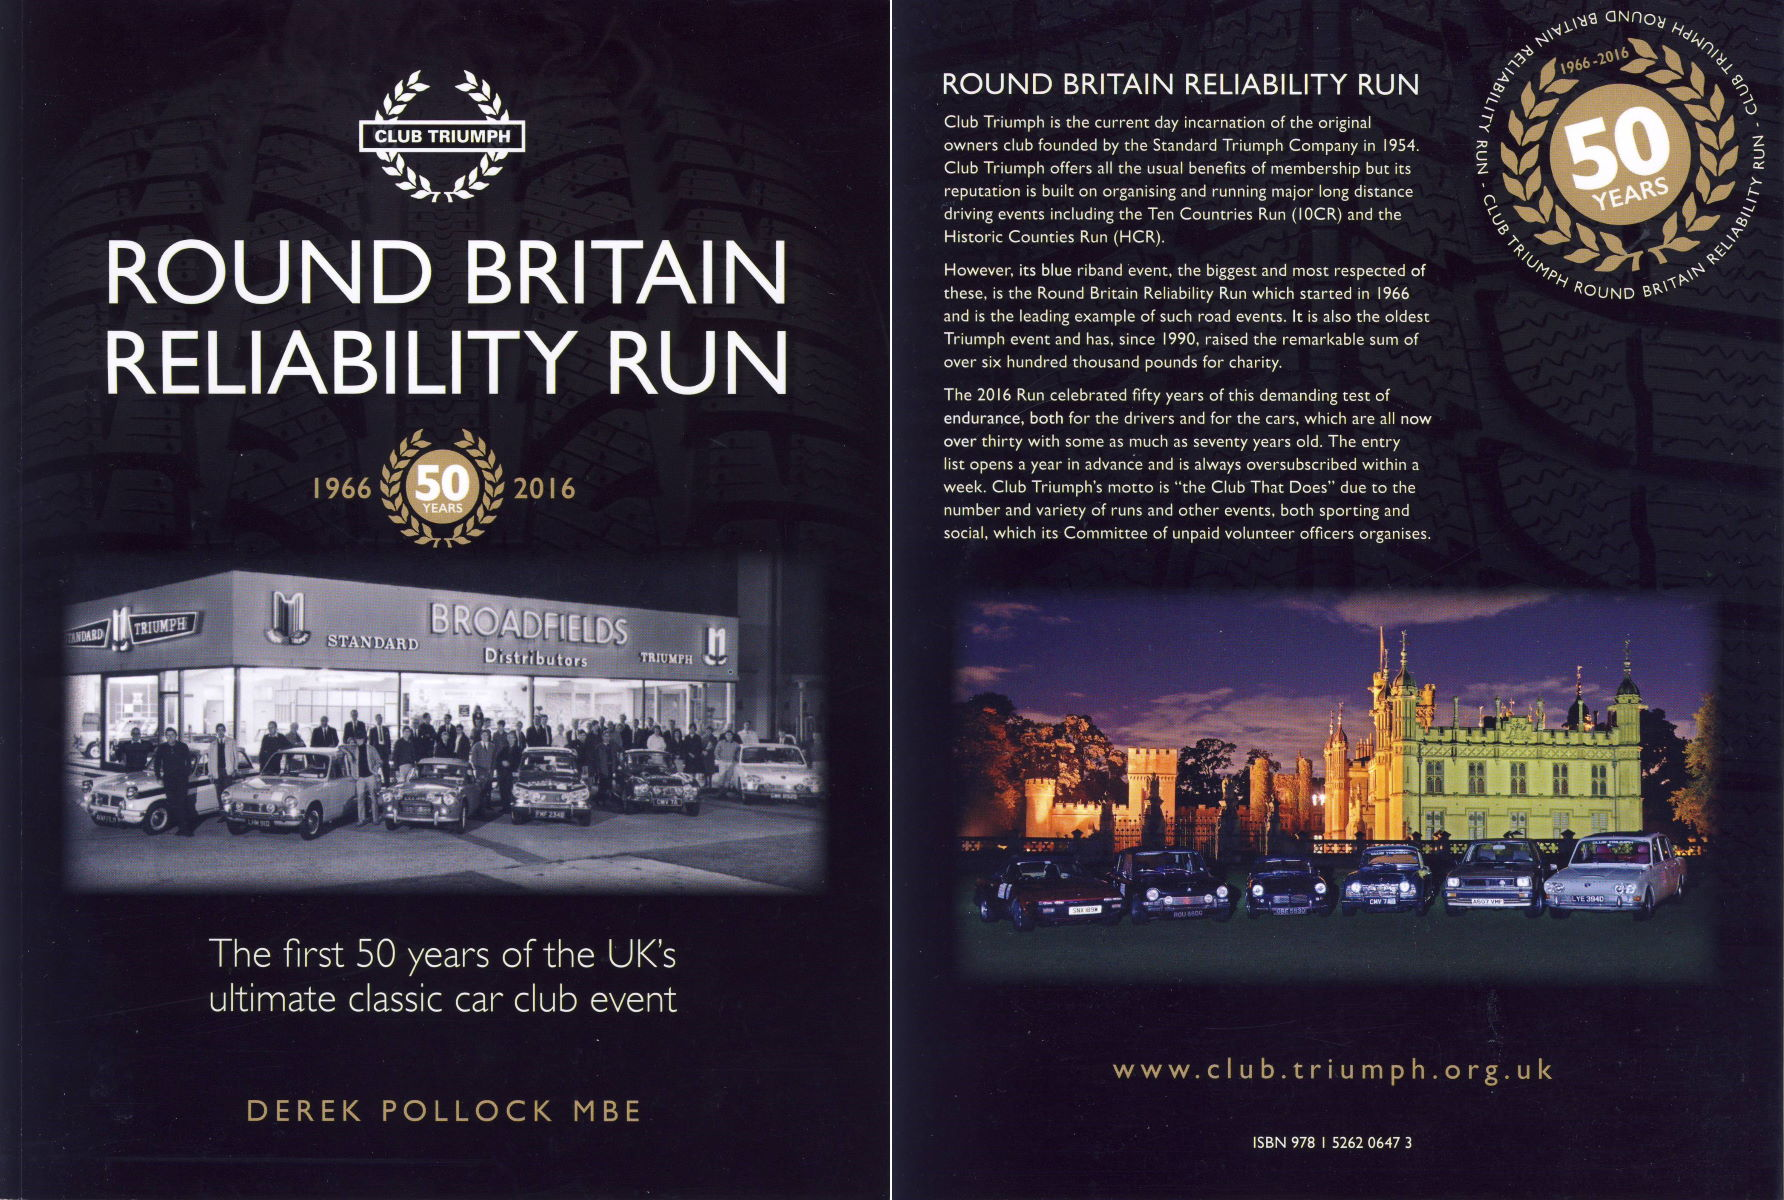 Round Britain Reliability Run. The first 50 years of the UK